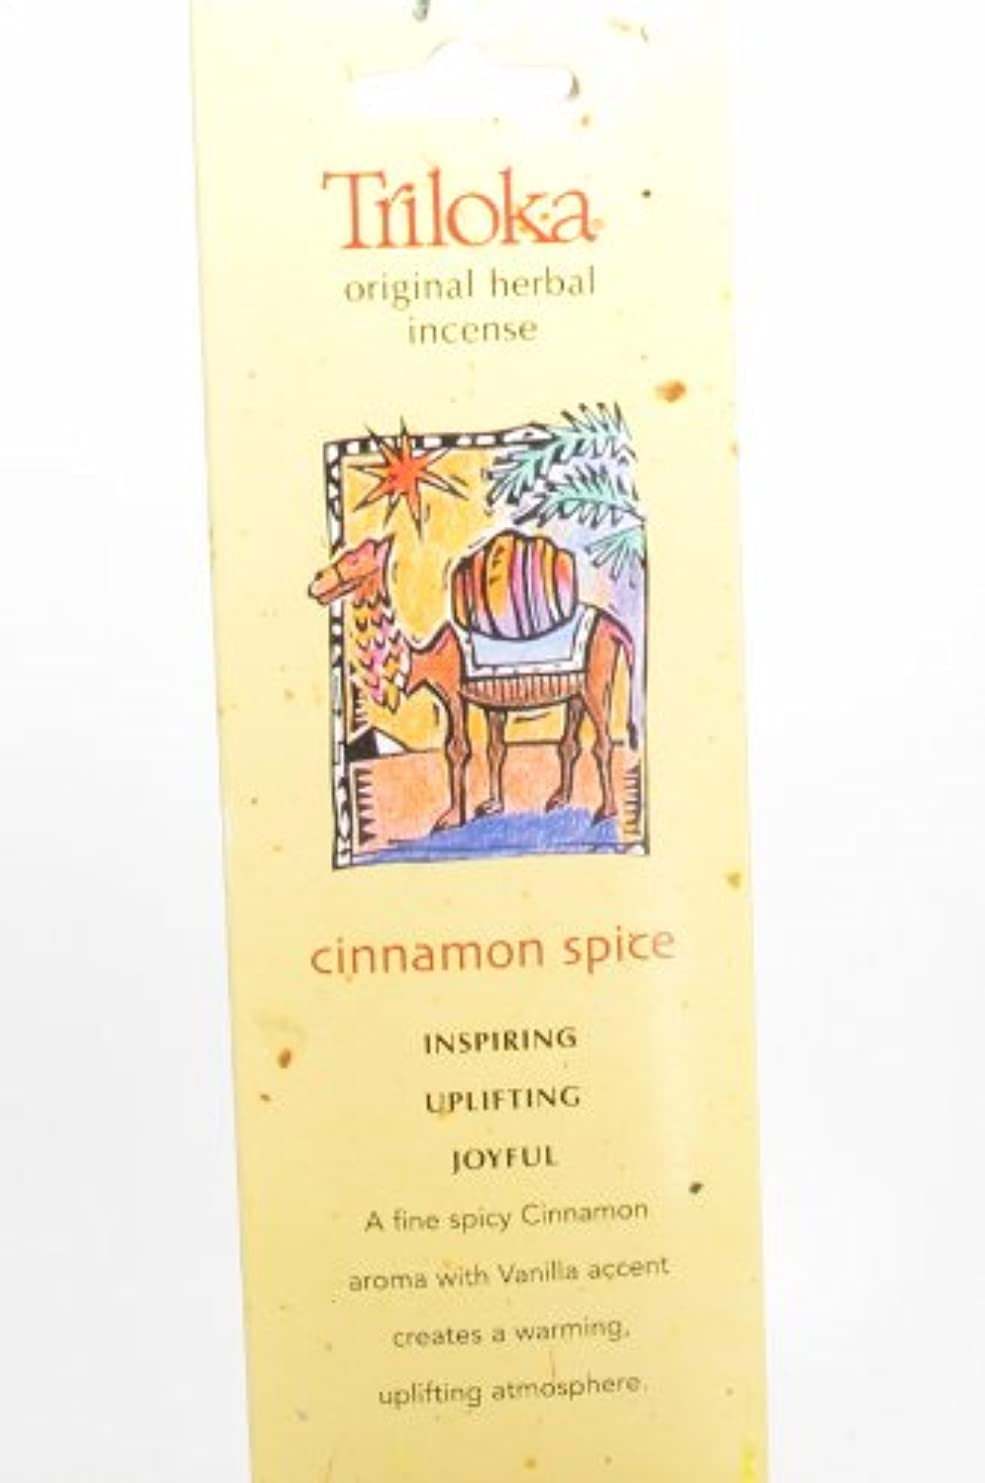 どこでも水銀の同様のCinnamon Spice – Triloka元Herbal Incense Sticks